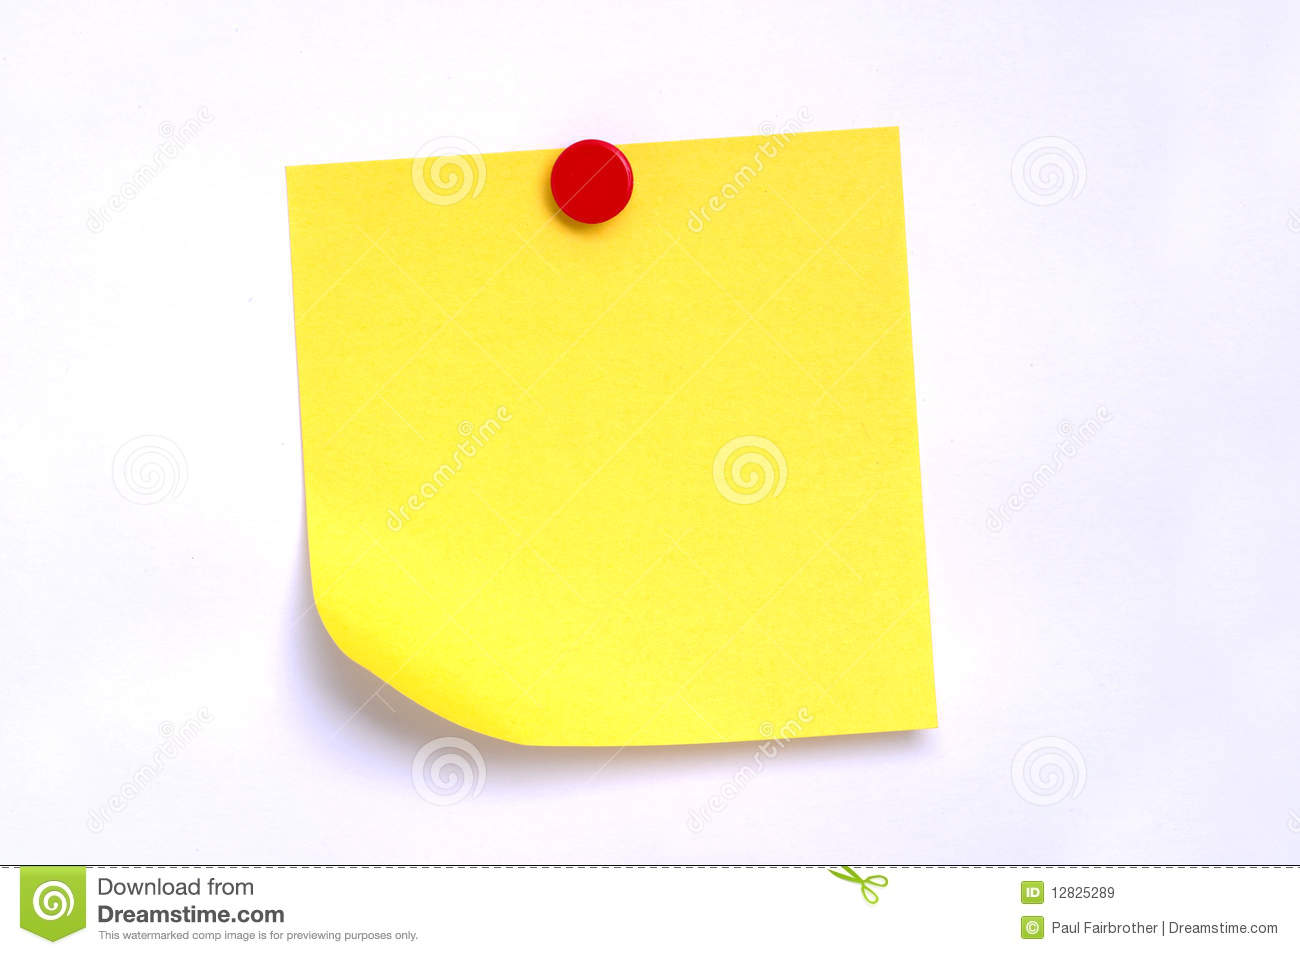 Note de post-it avec la broche rouge